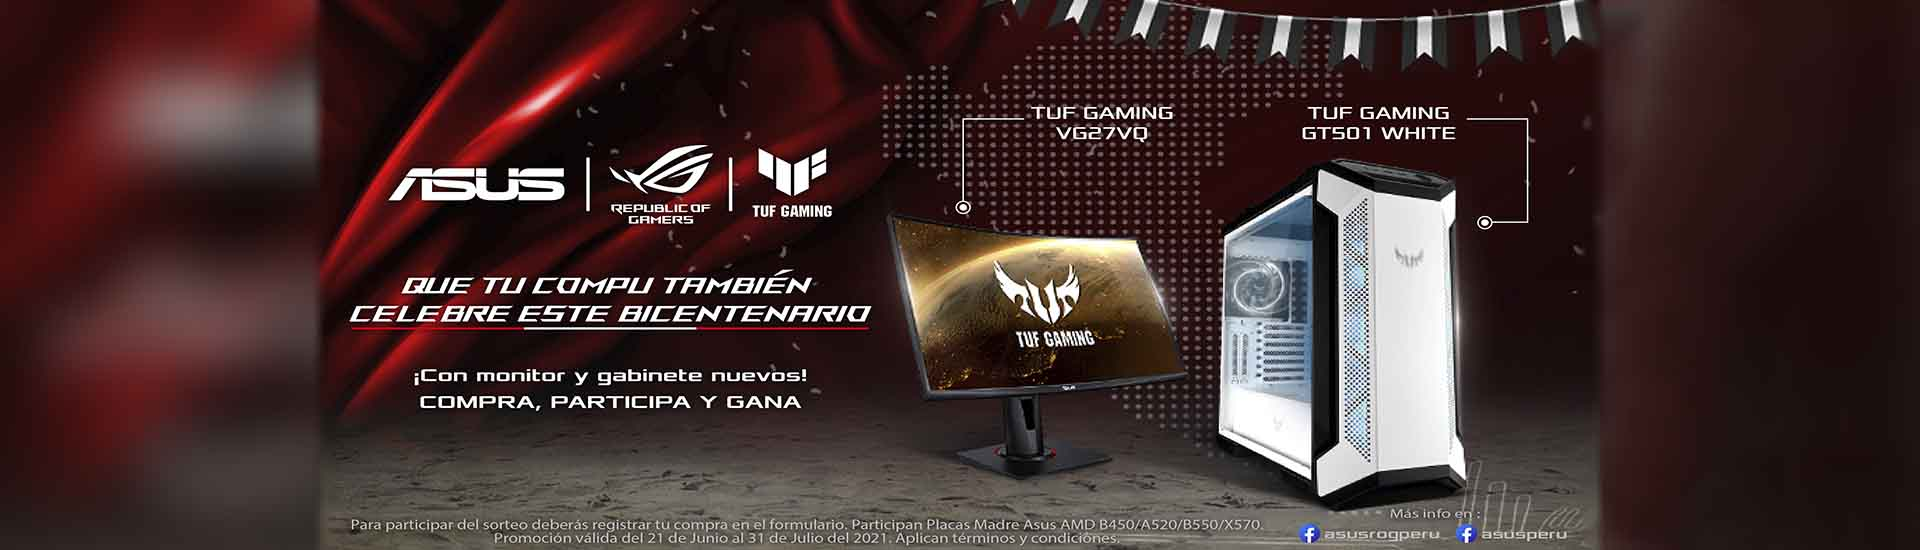 BANNERS asus